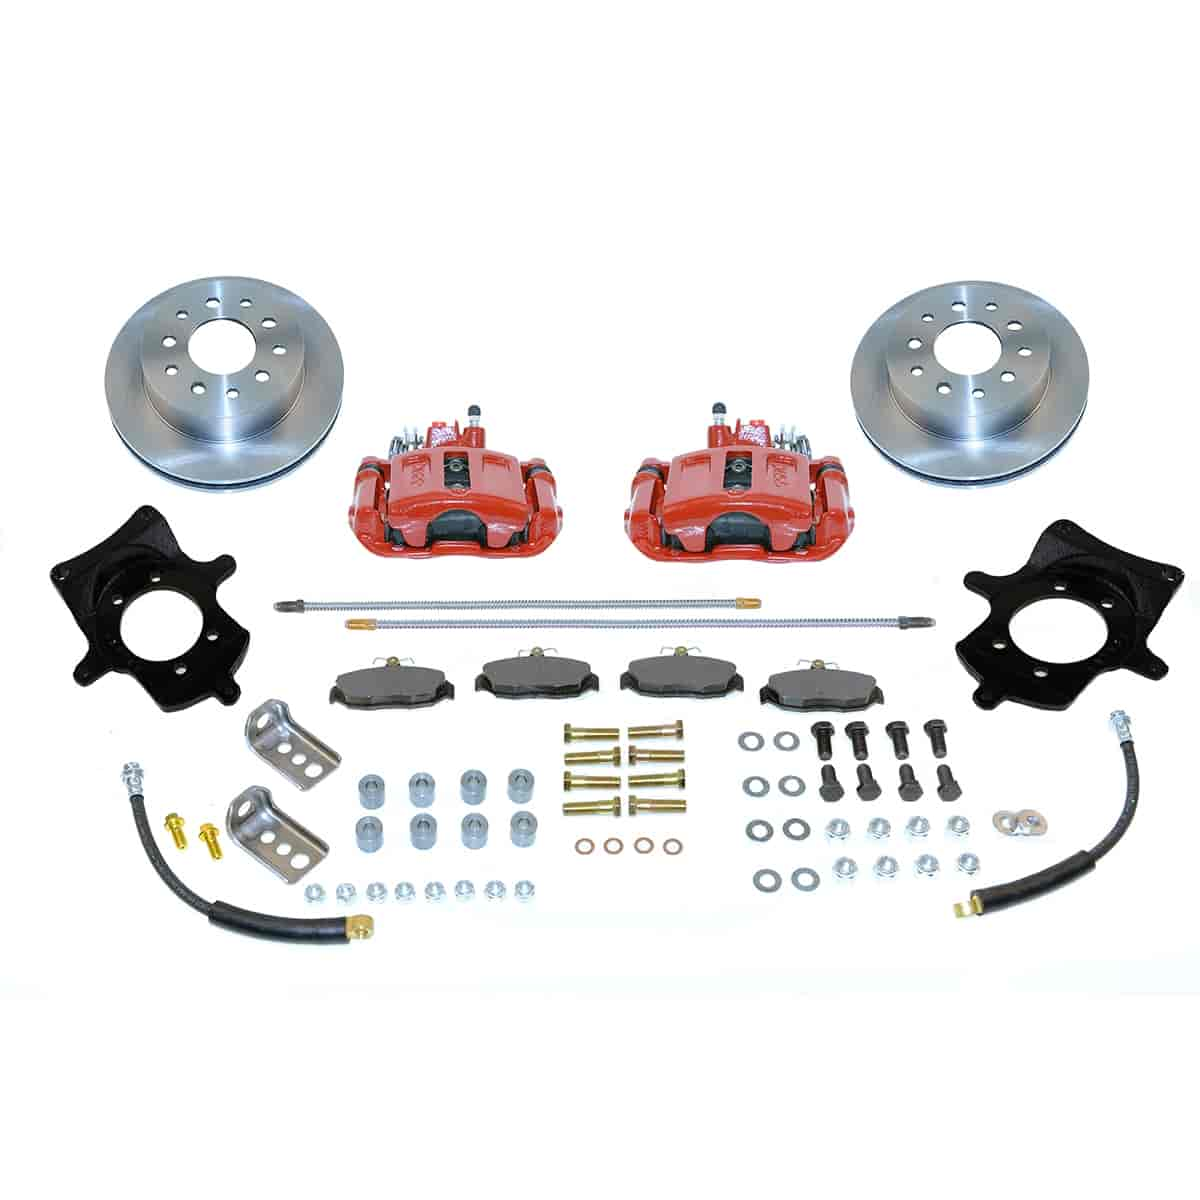 SSBC A114R - Stainless Steel Brakes Single Piston Rear Drum to Disc Brake Conversion Kits